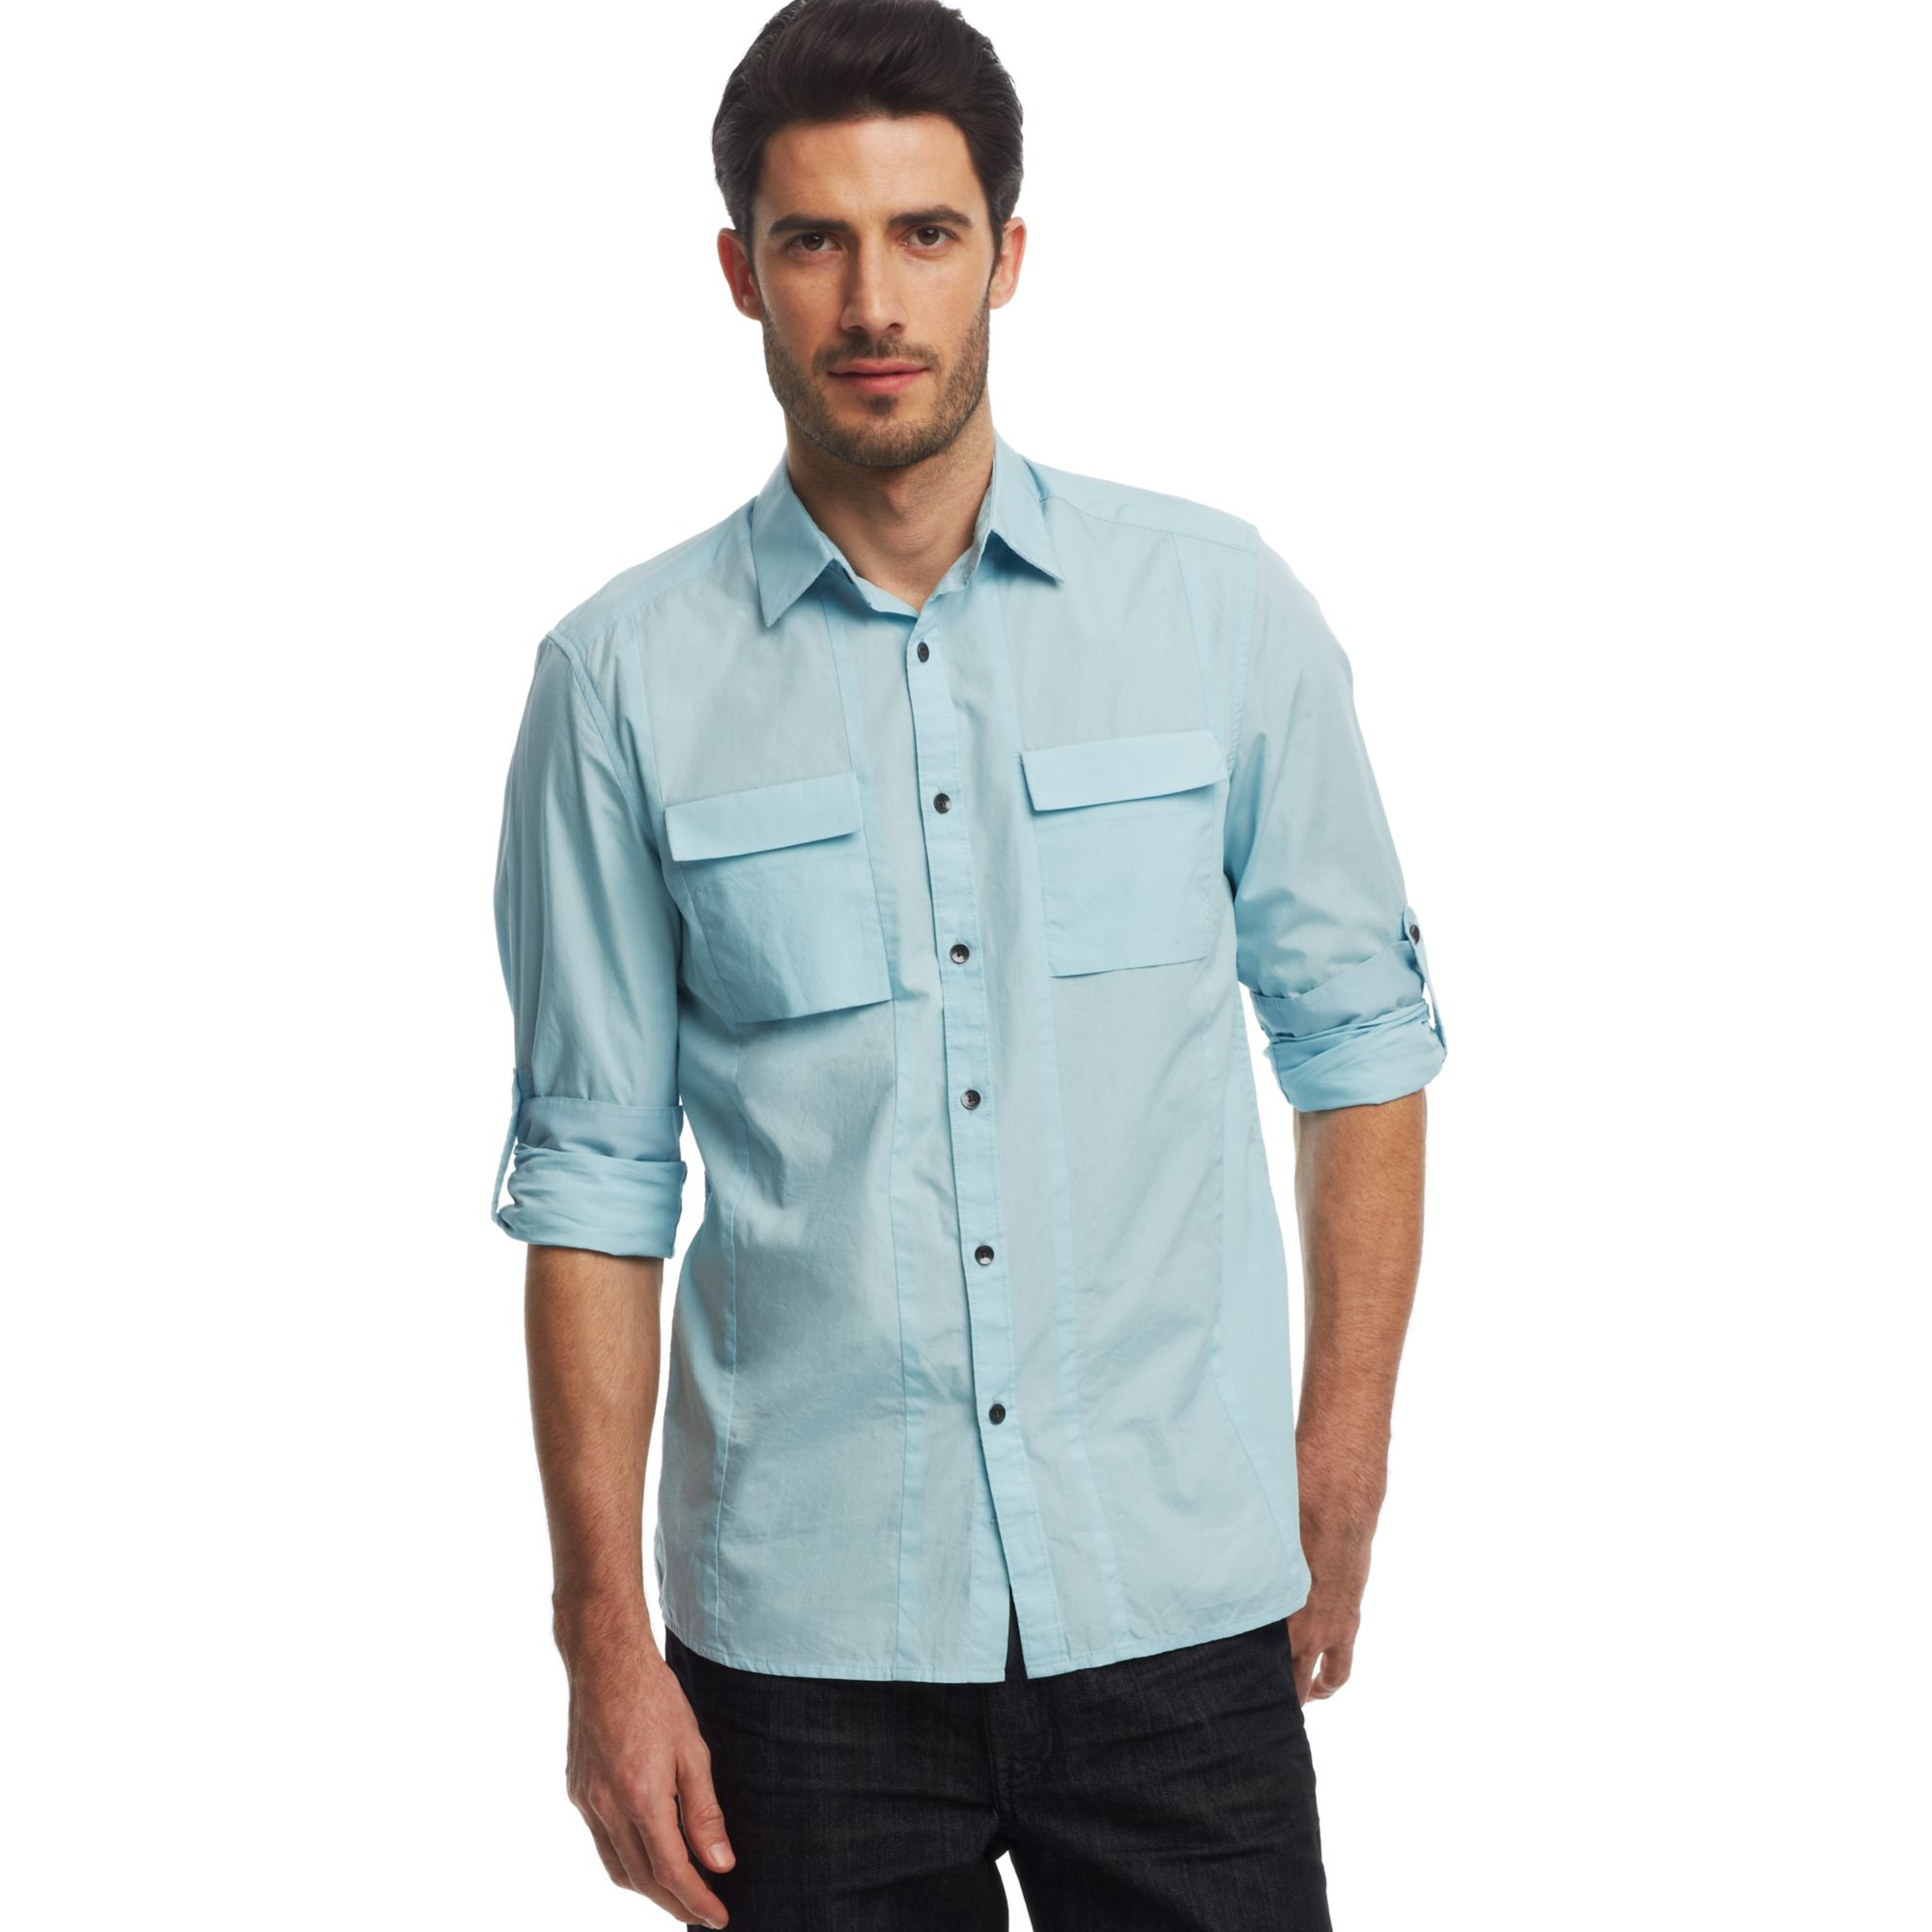 Kenneth Cole Reaction Novelty Rolltab Sleeve Shirt In Blue